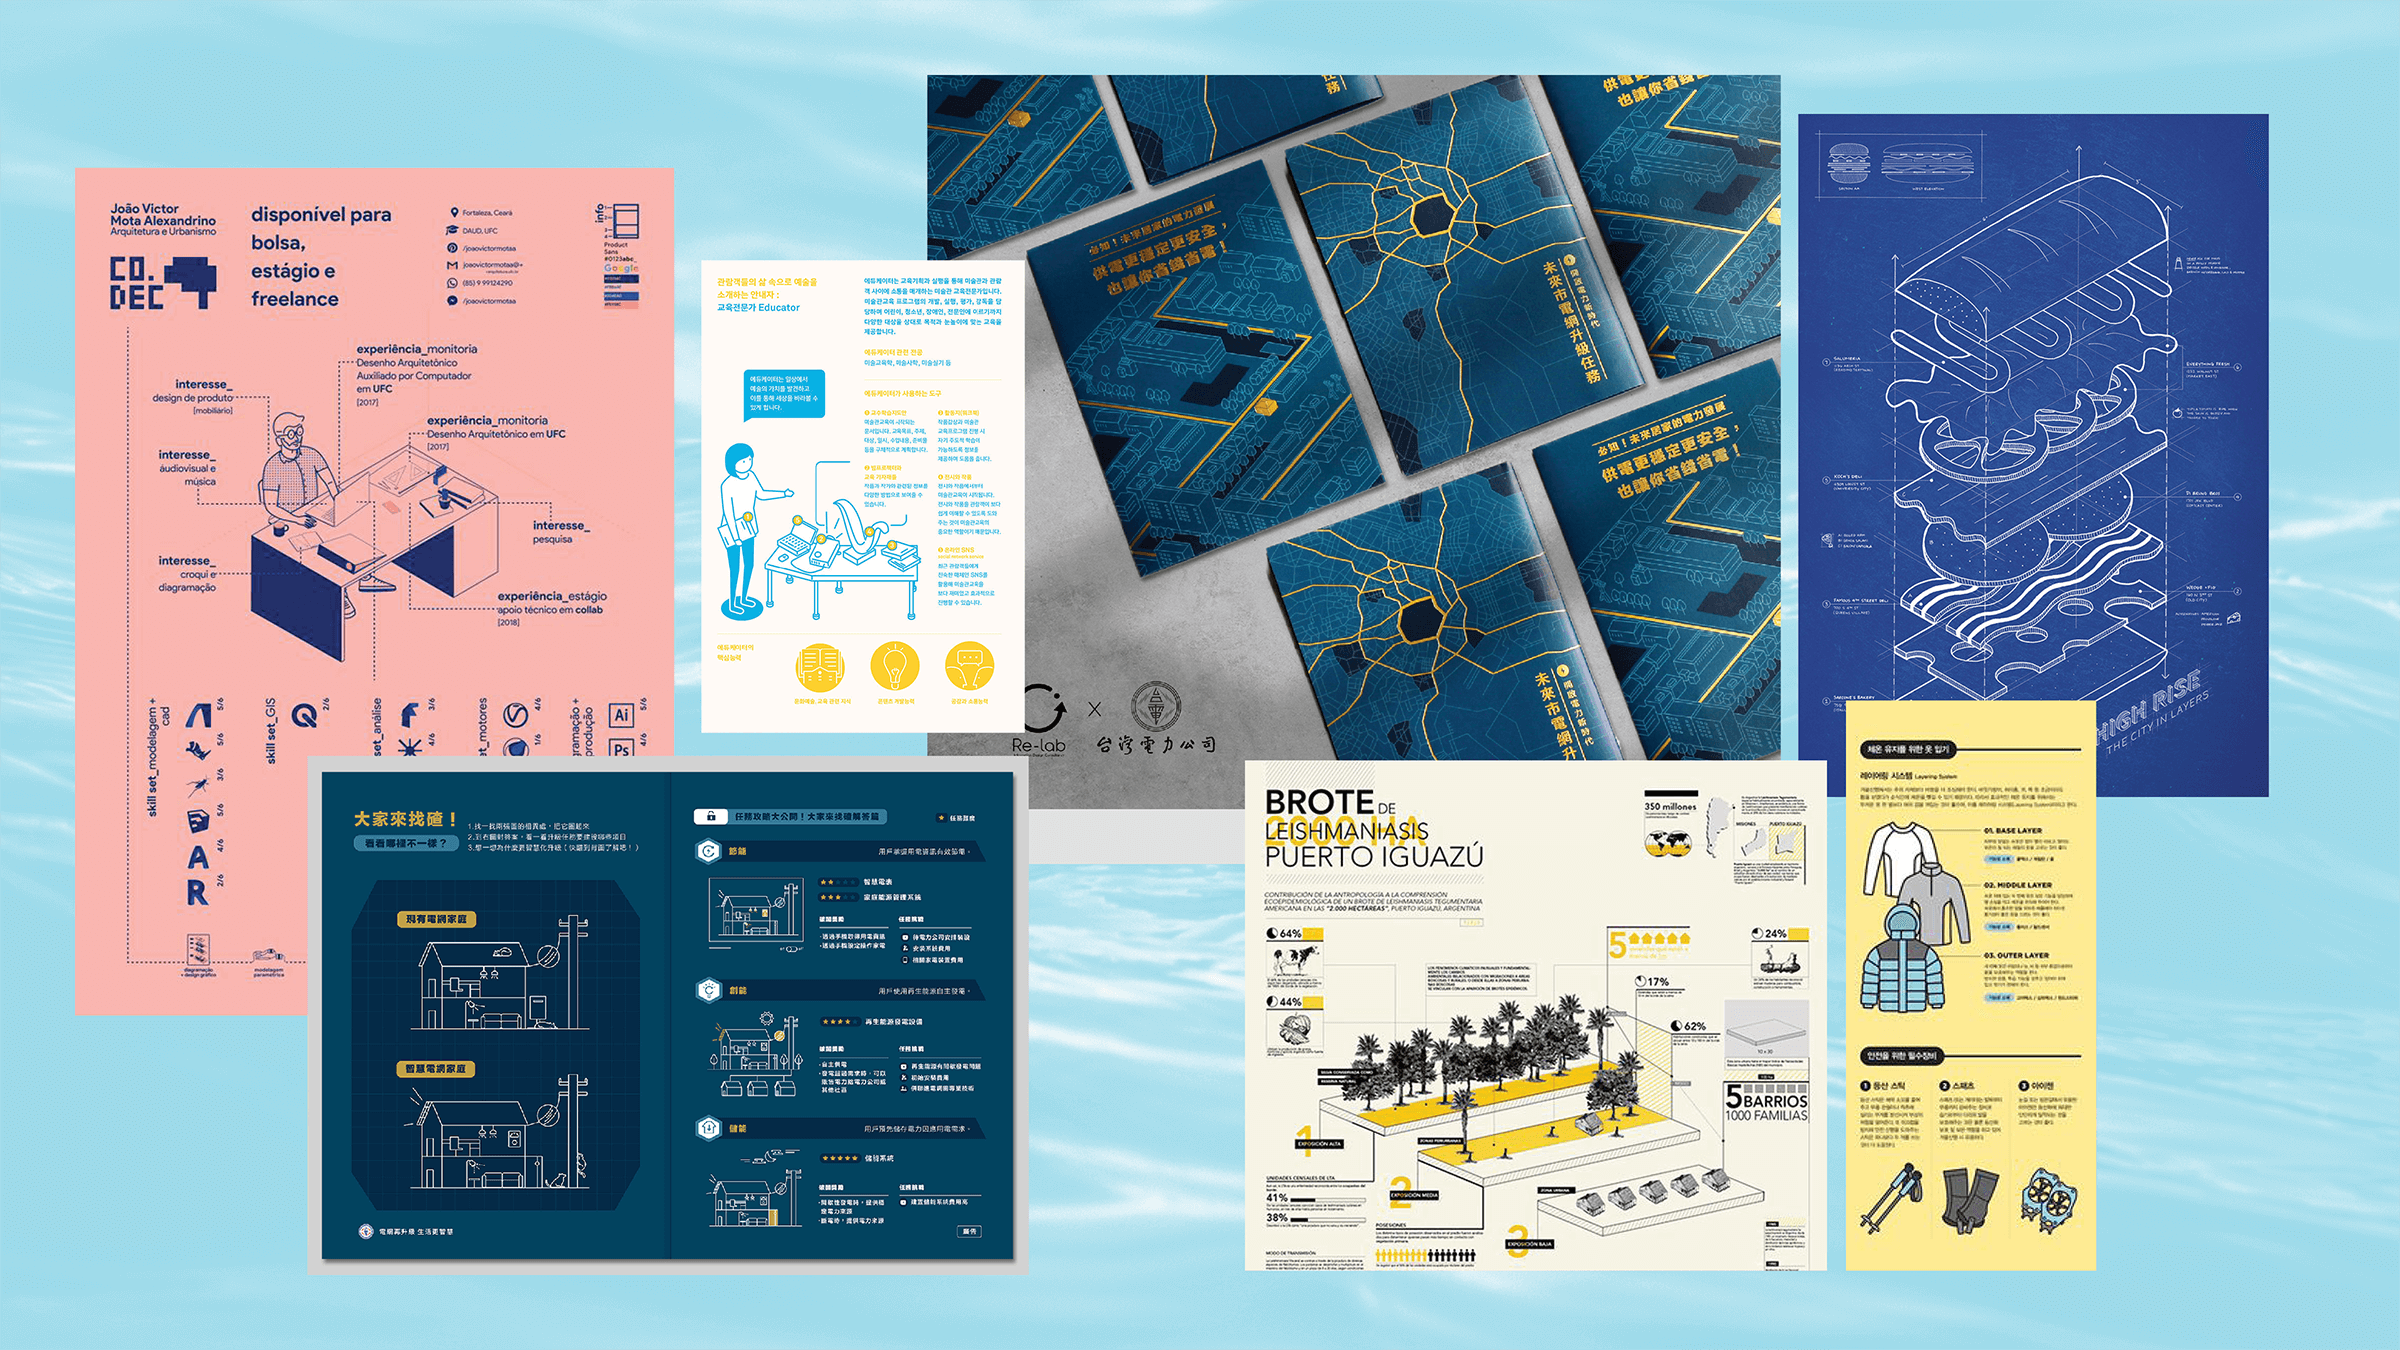 A mood board showing inspiration for the infographic.